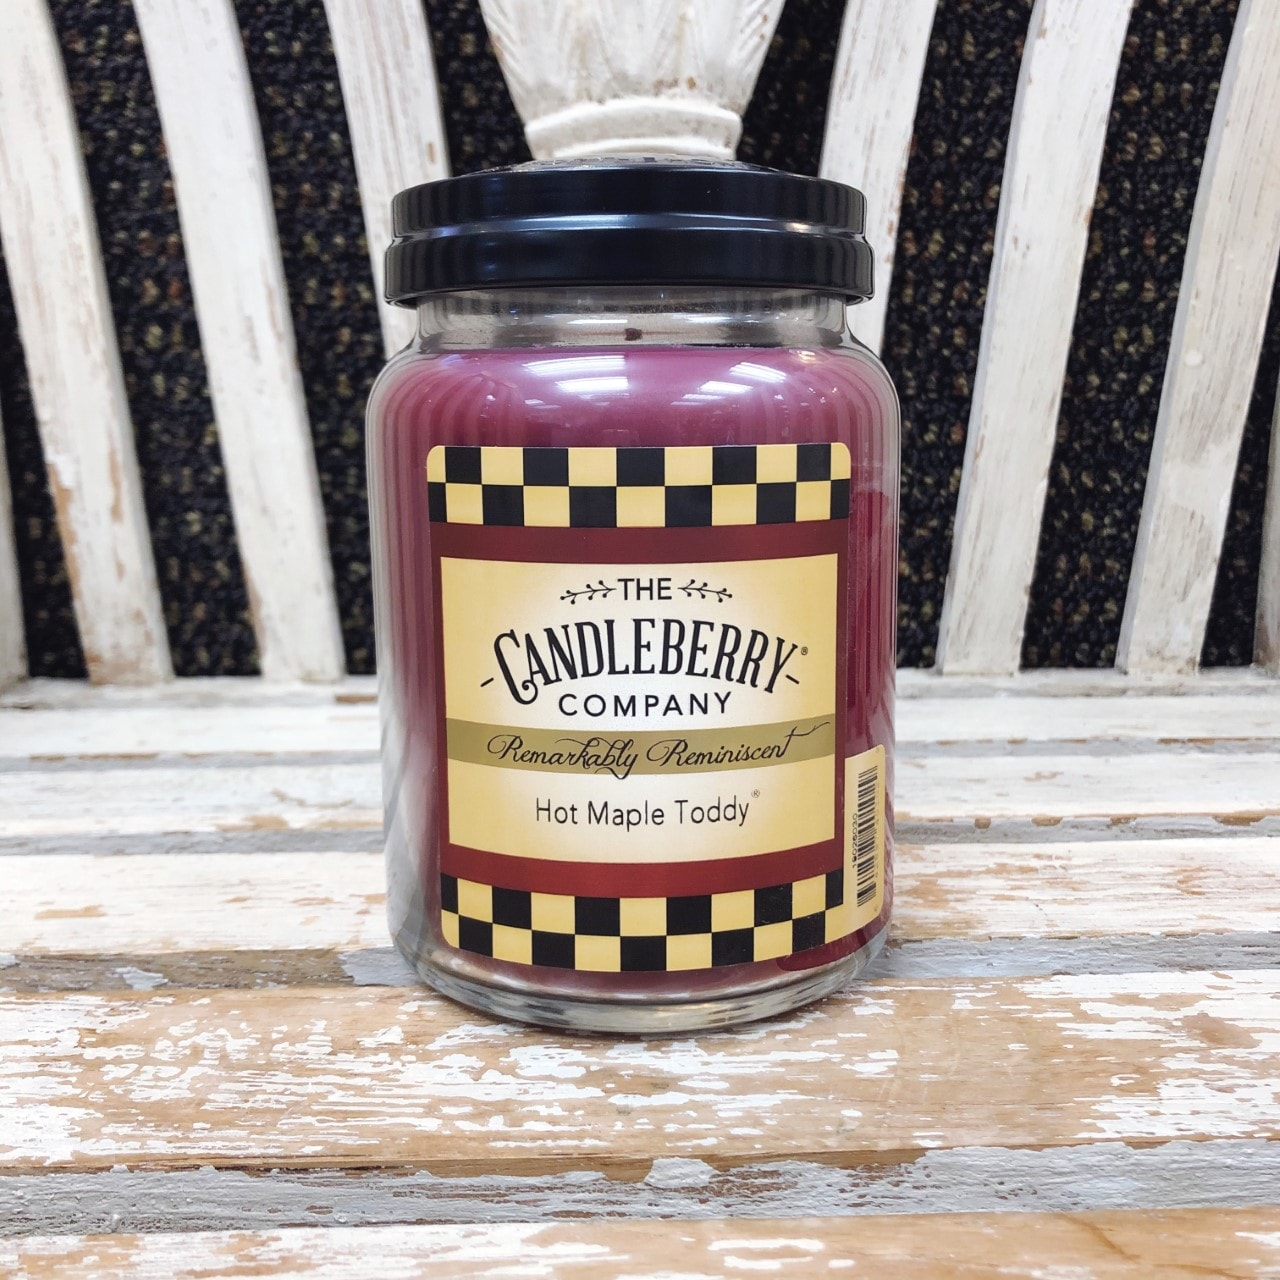 Candleberry Candle Hot Maple Toddy